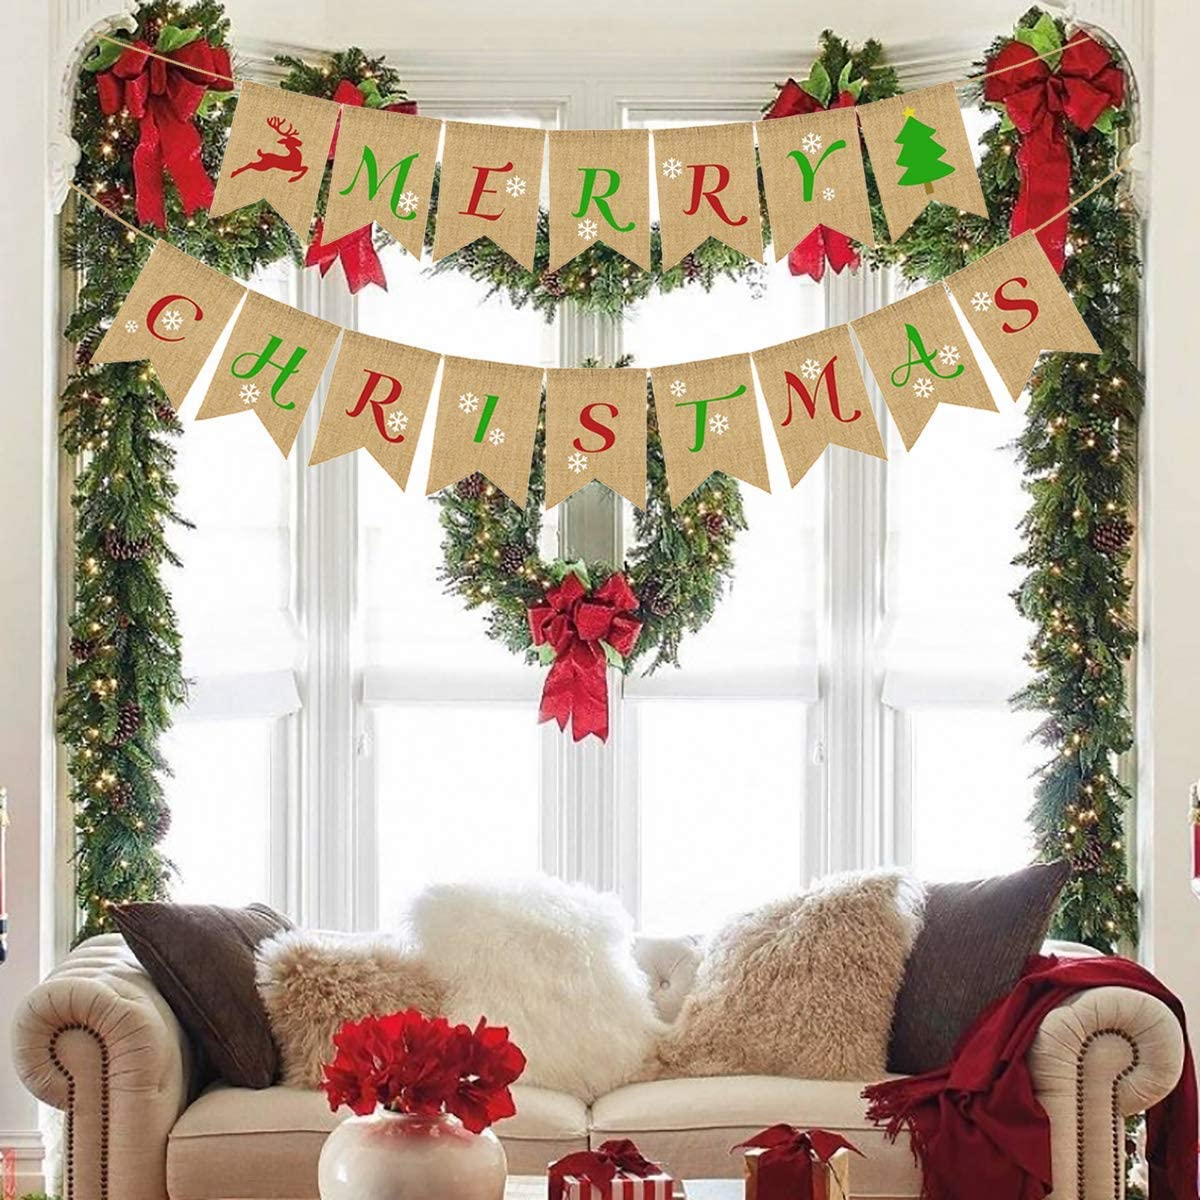 Merry Christmas Burlap Banners,Christmas Banner,Christmas Party Burlap Garland Holiday Bunting Indoor Outdoor Sign Decoration